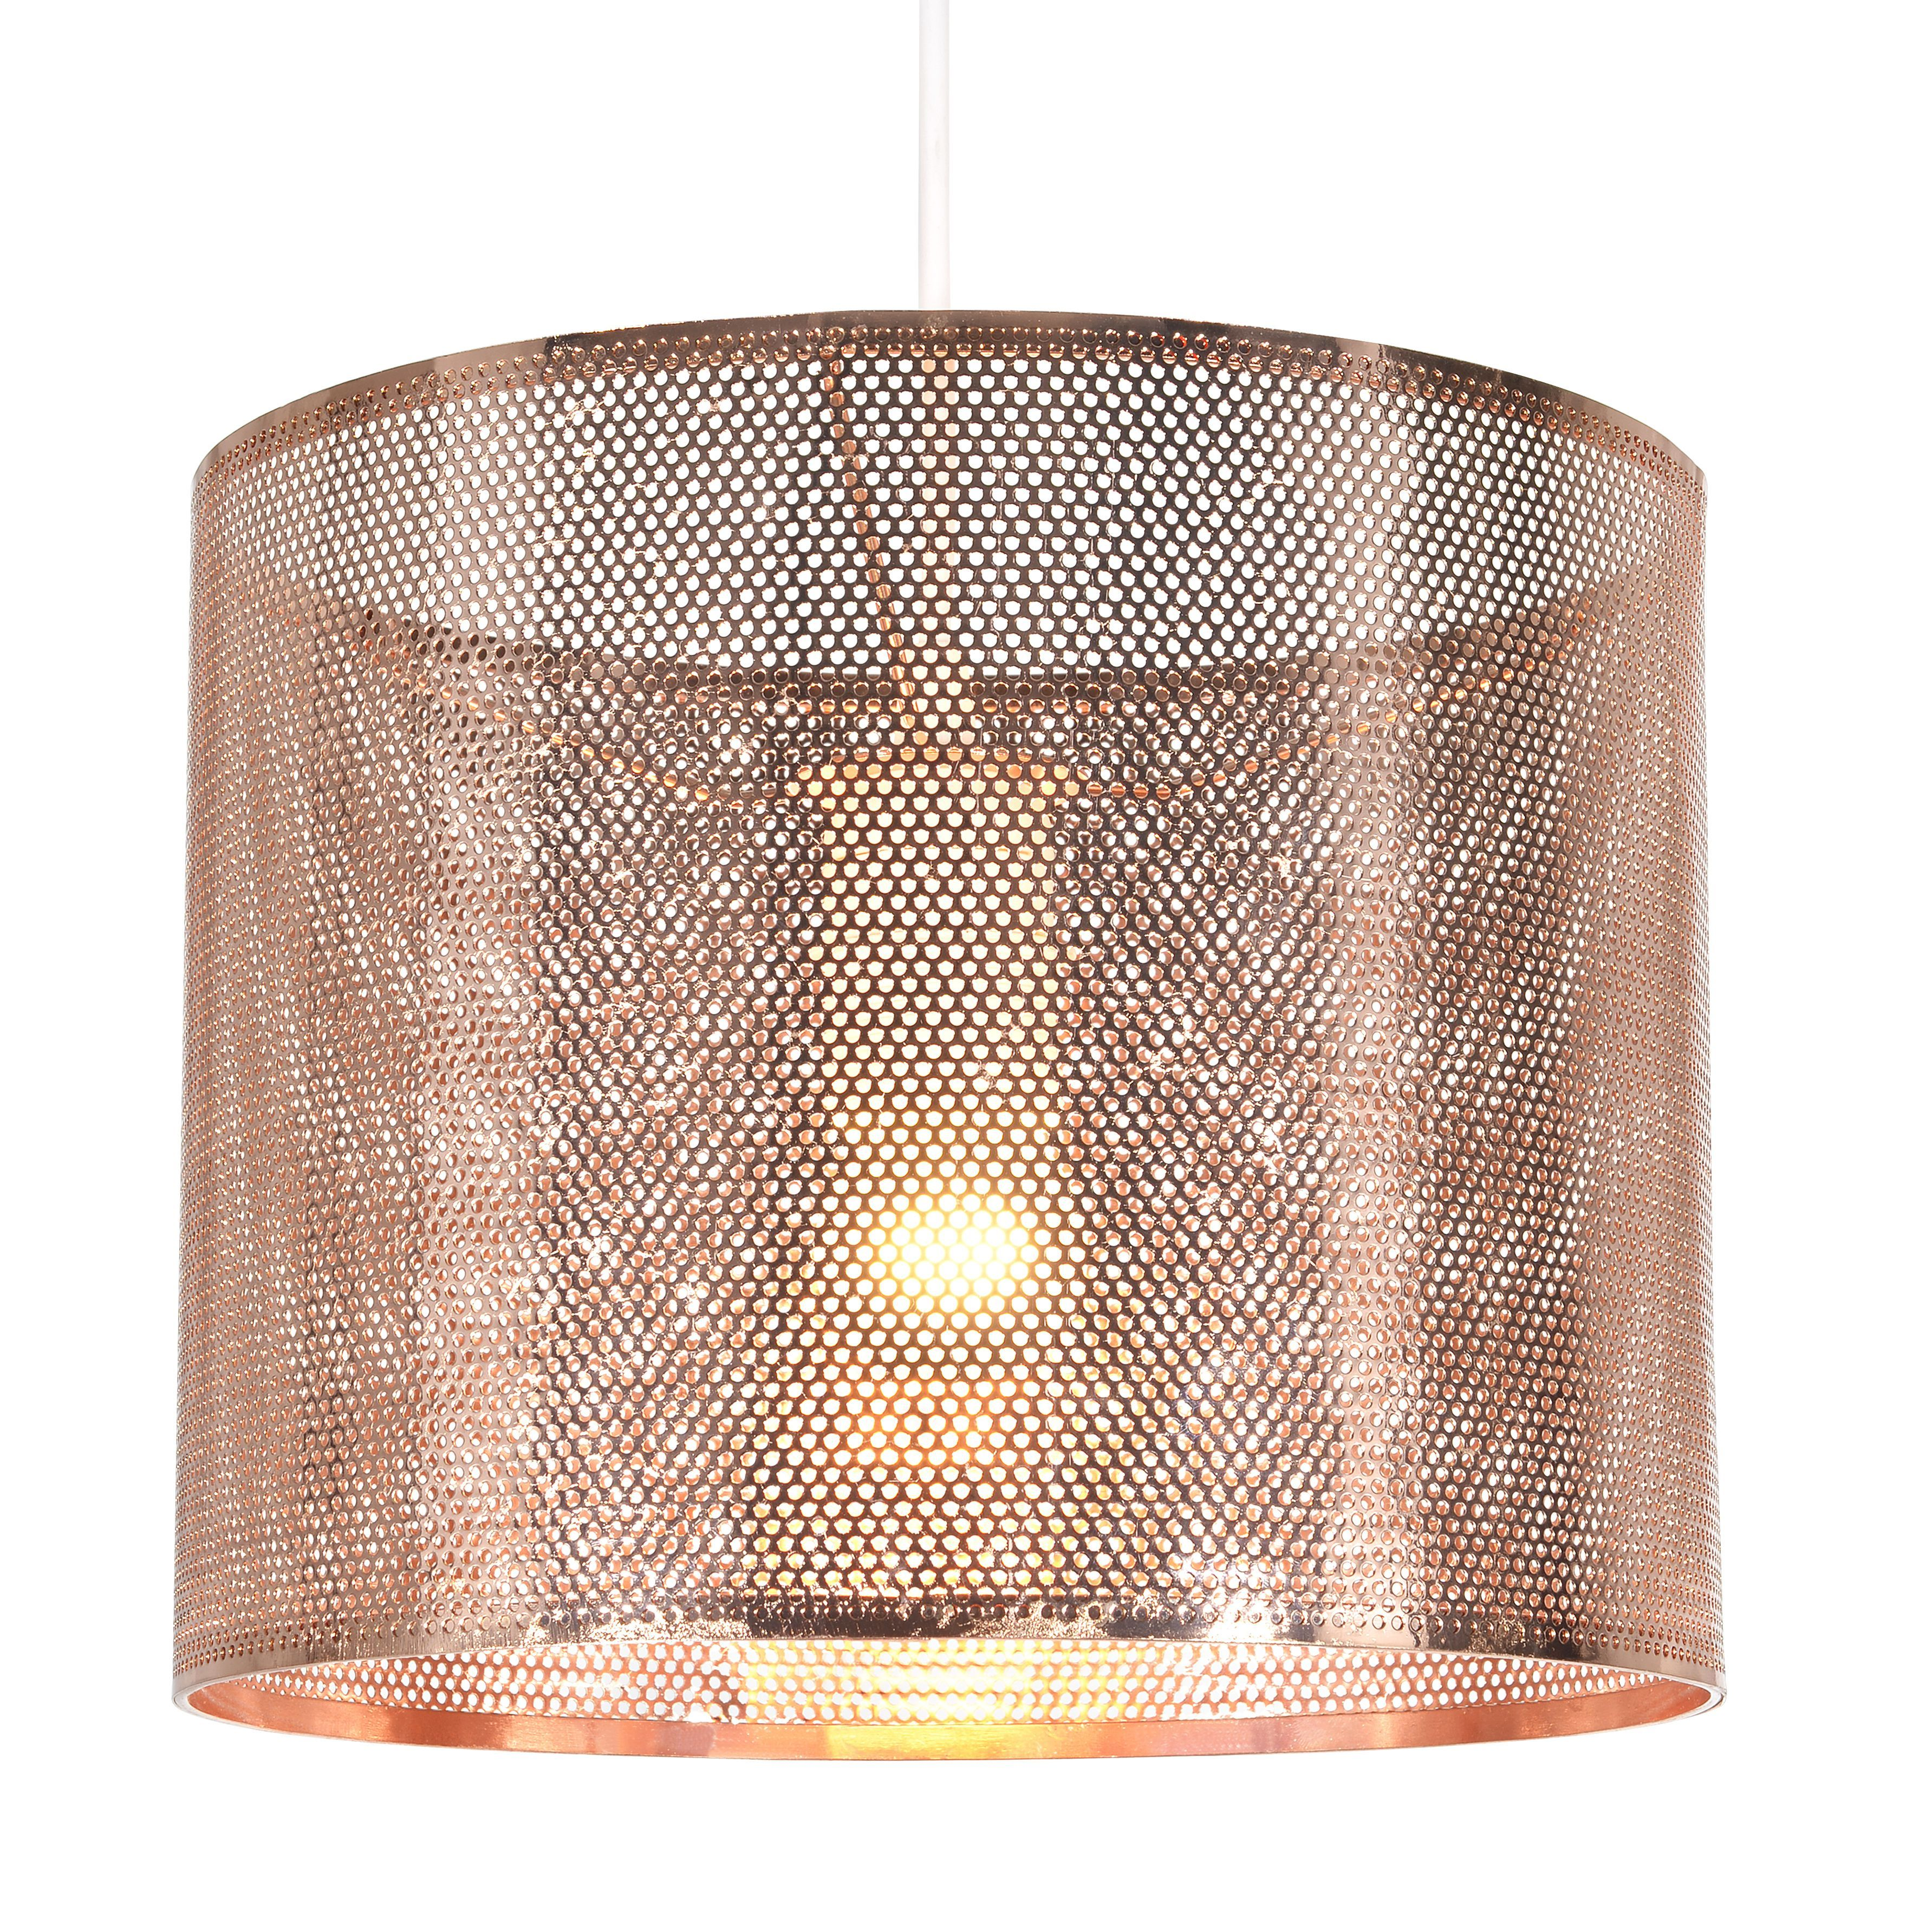 Diy supplies accessories diy at b q - Colours Belina Copper Cutout Light Shade D 25cm Departments Diy At B Q